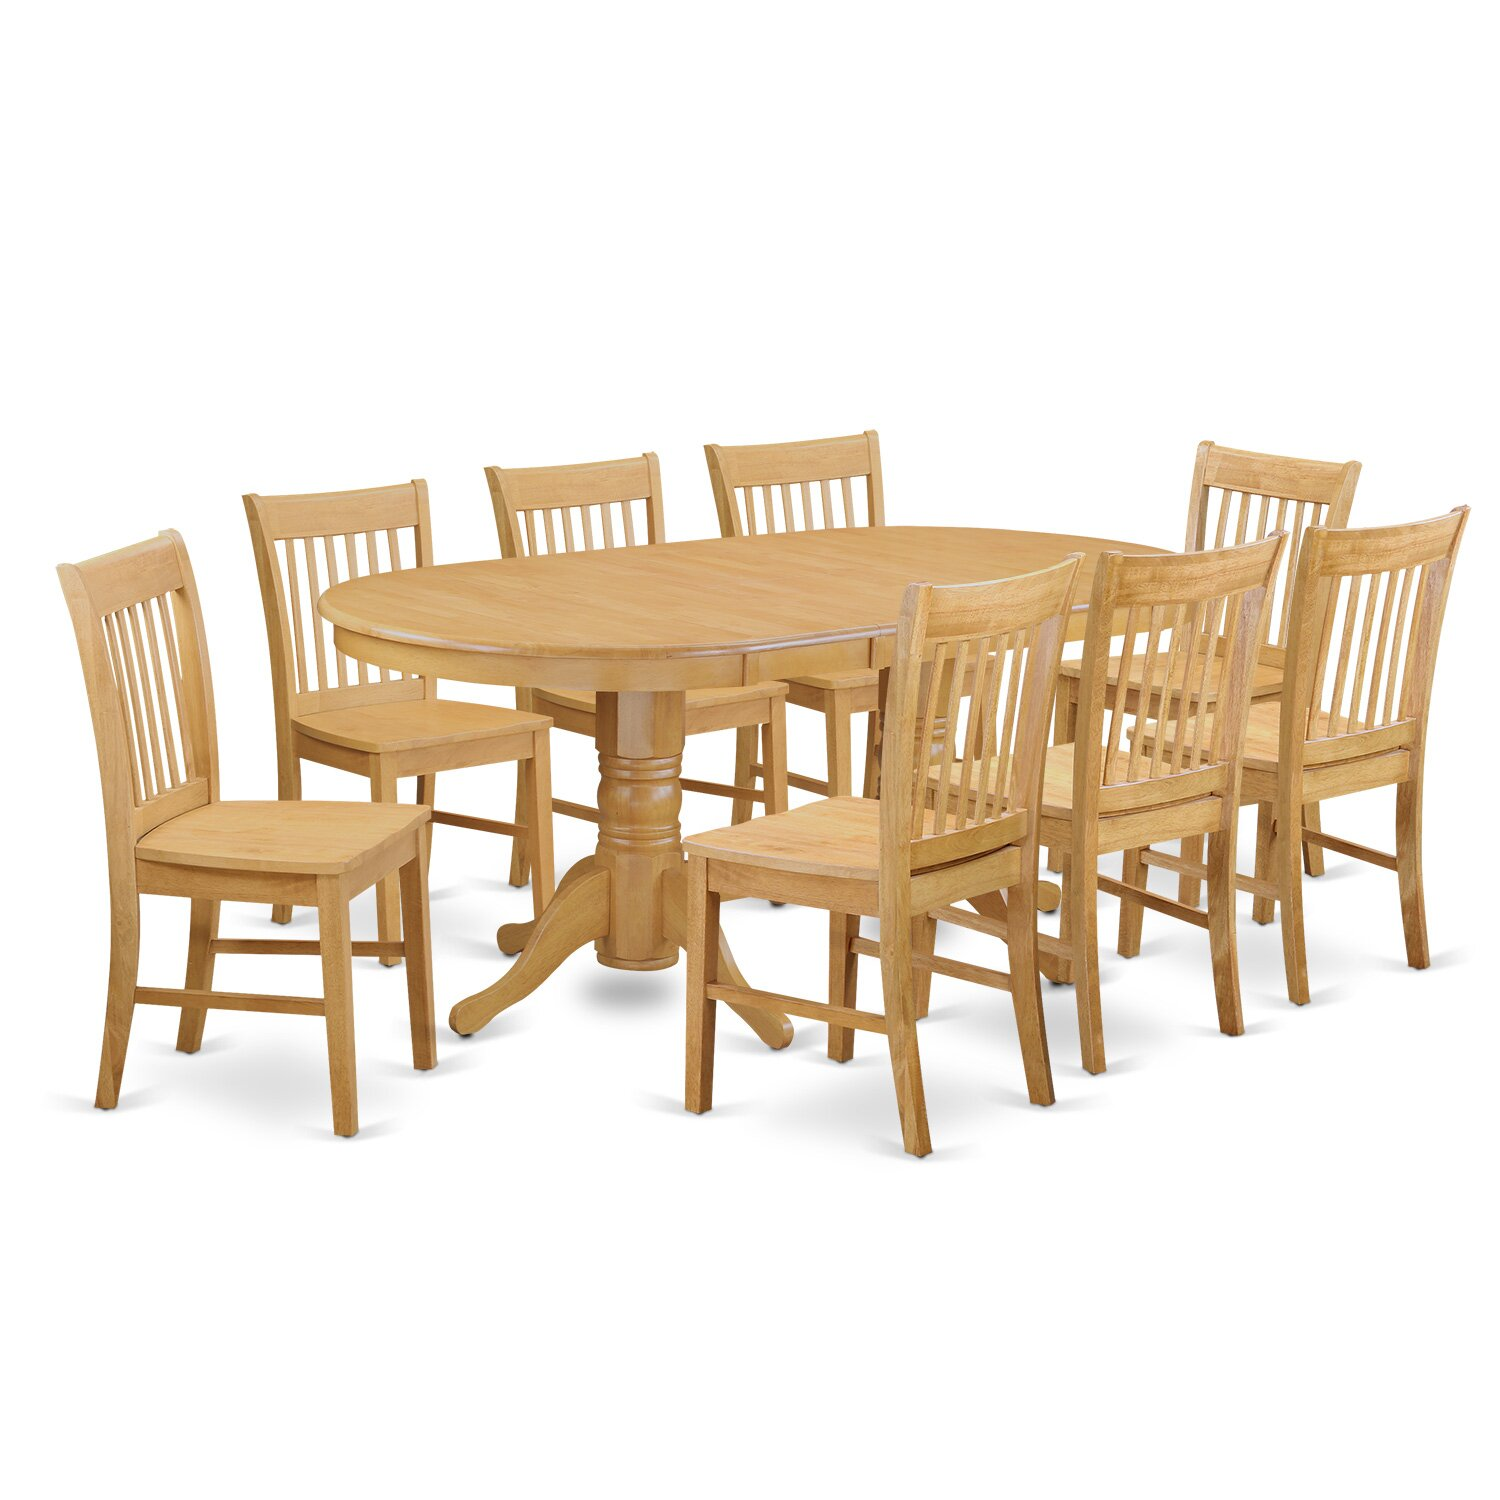 Darby home co rockdale 9 piece dining set for Signoraware organise your kitchen set 8 pieces